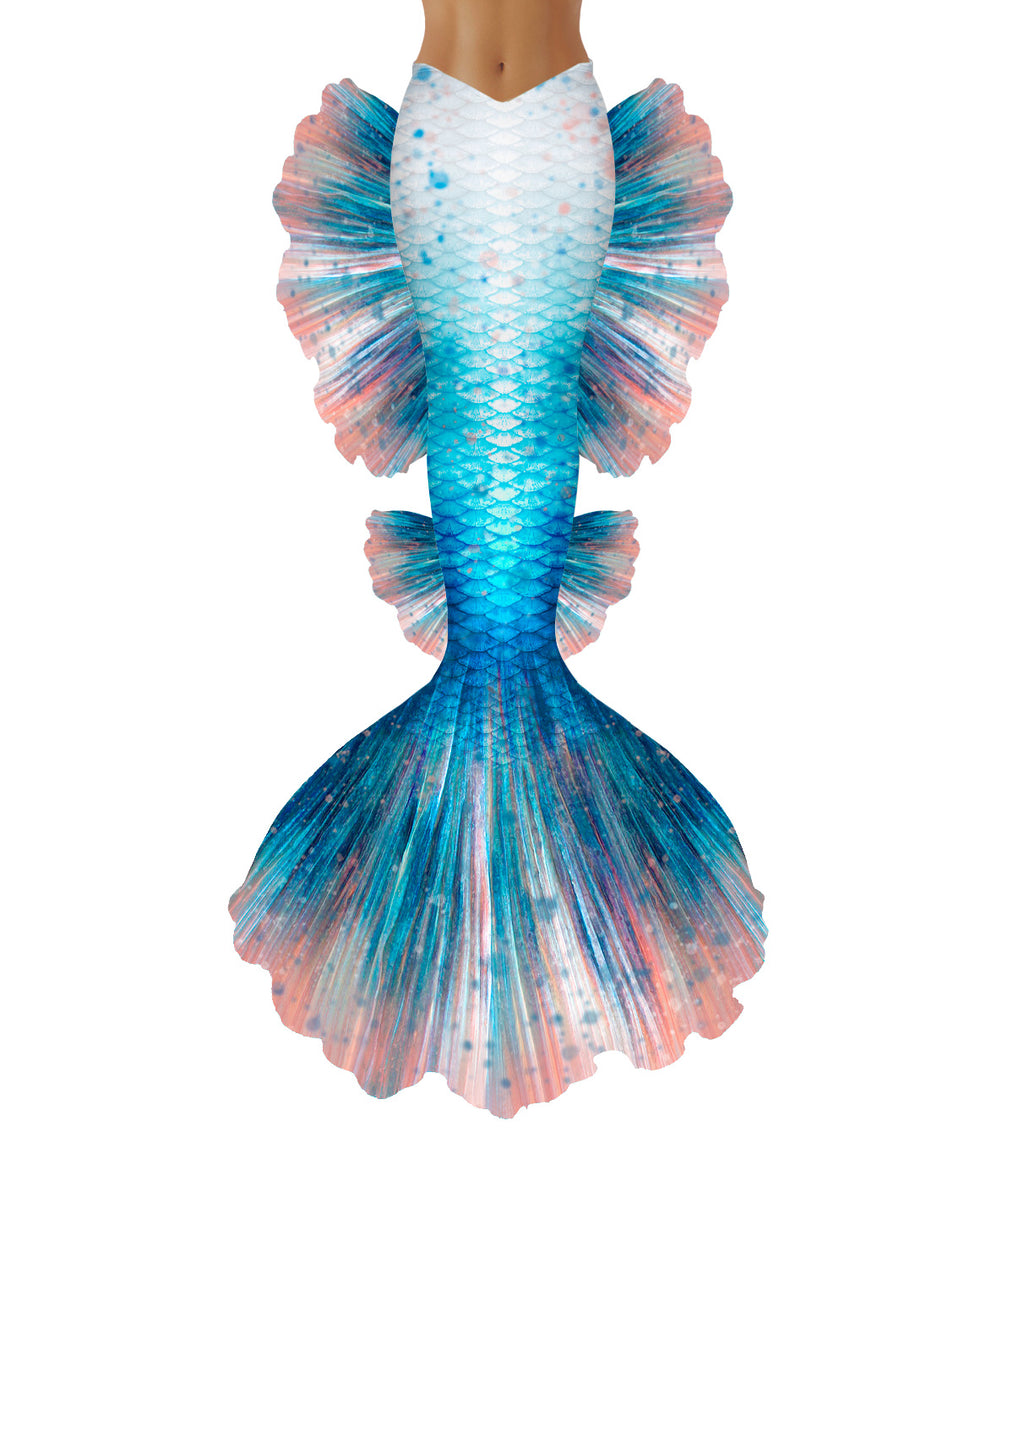 Freckled Betta Mermaid Tail